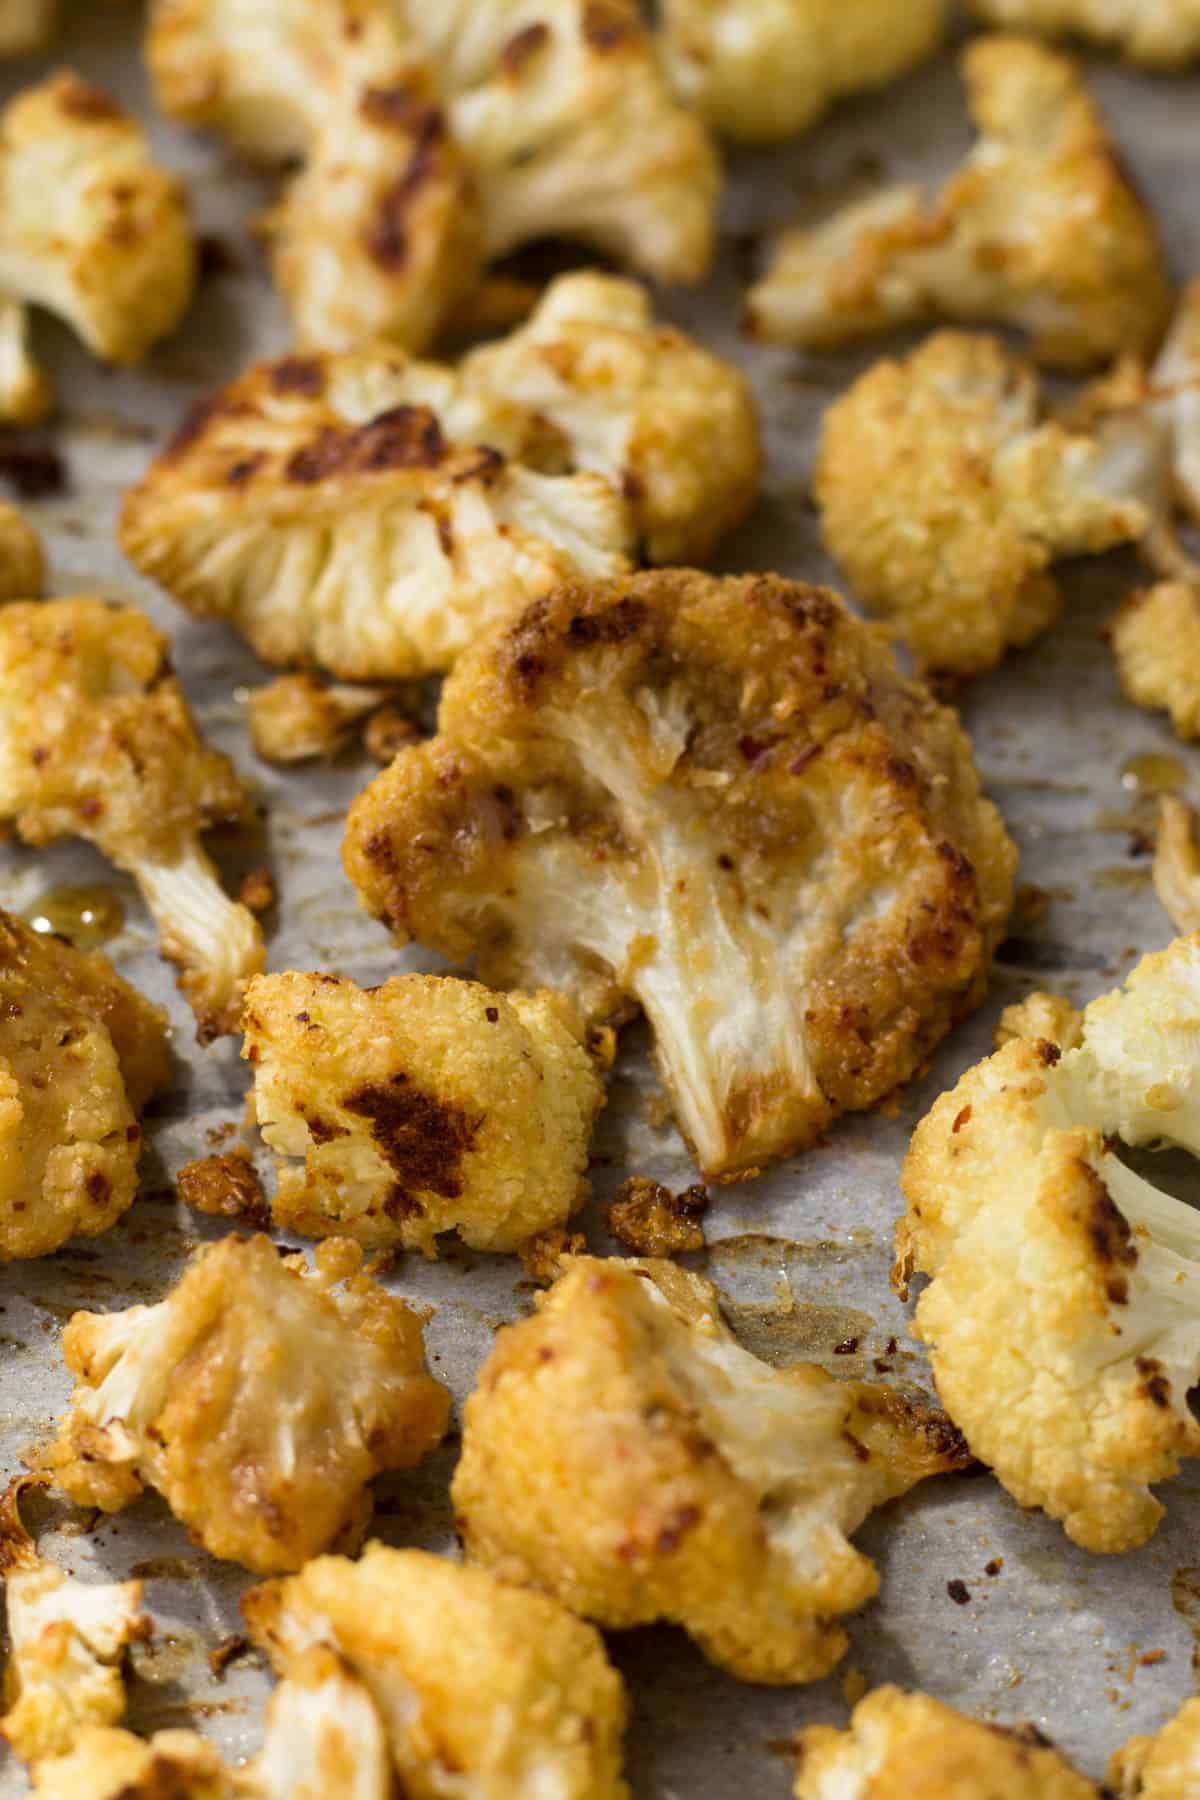 This vegan and paleo Maple Tahini Roasted Cauliflower make for an easy sweet and savory side dish - Eat the Gains